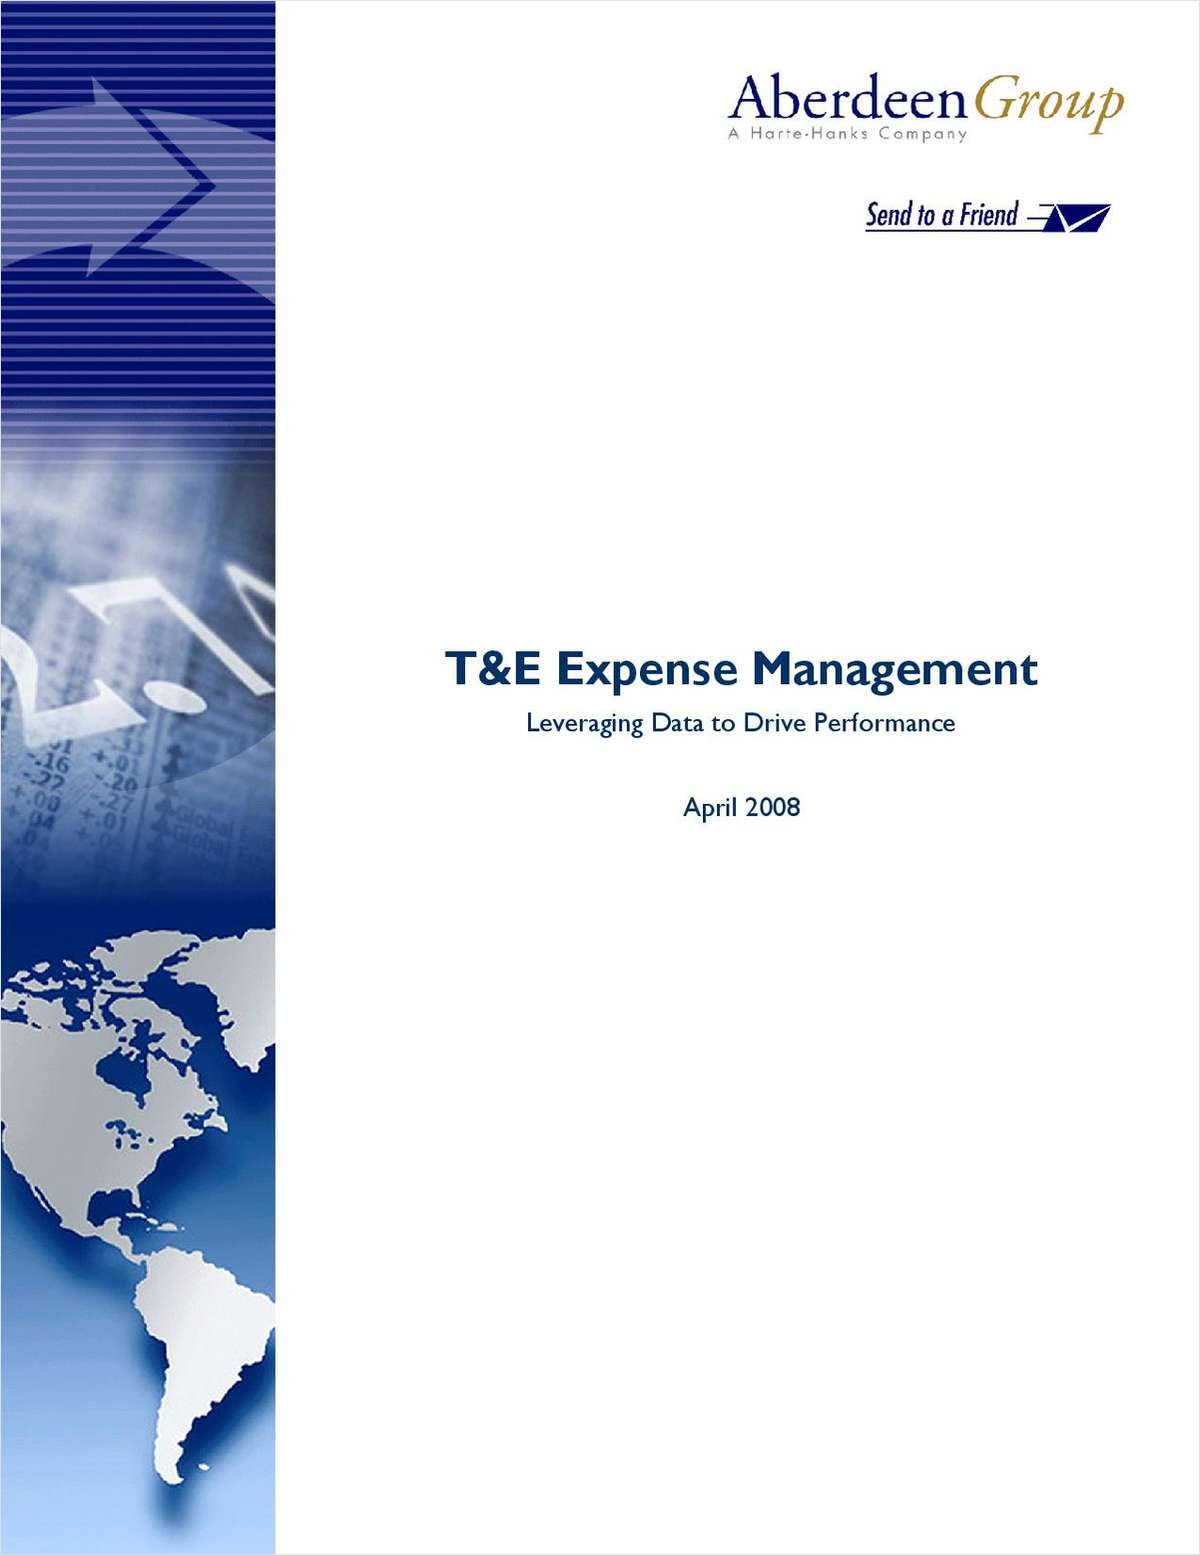 T&E Expense Management: Leveraging Data to Drive Performance